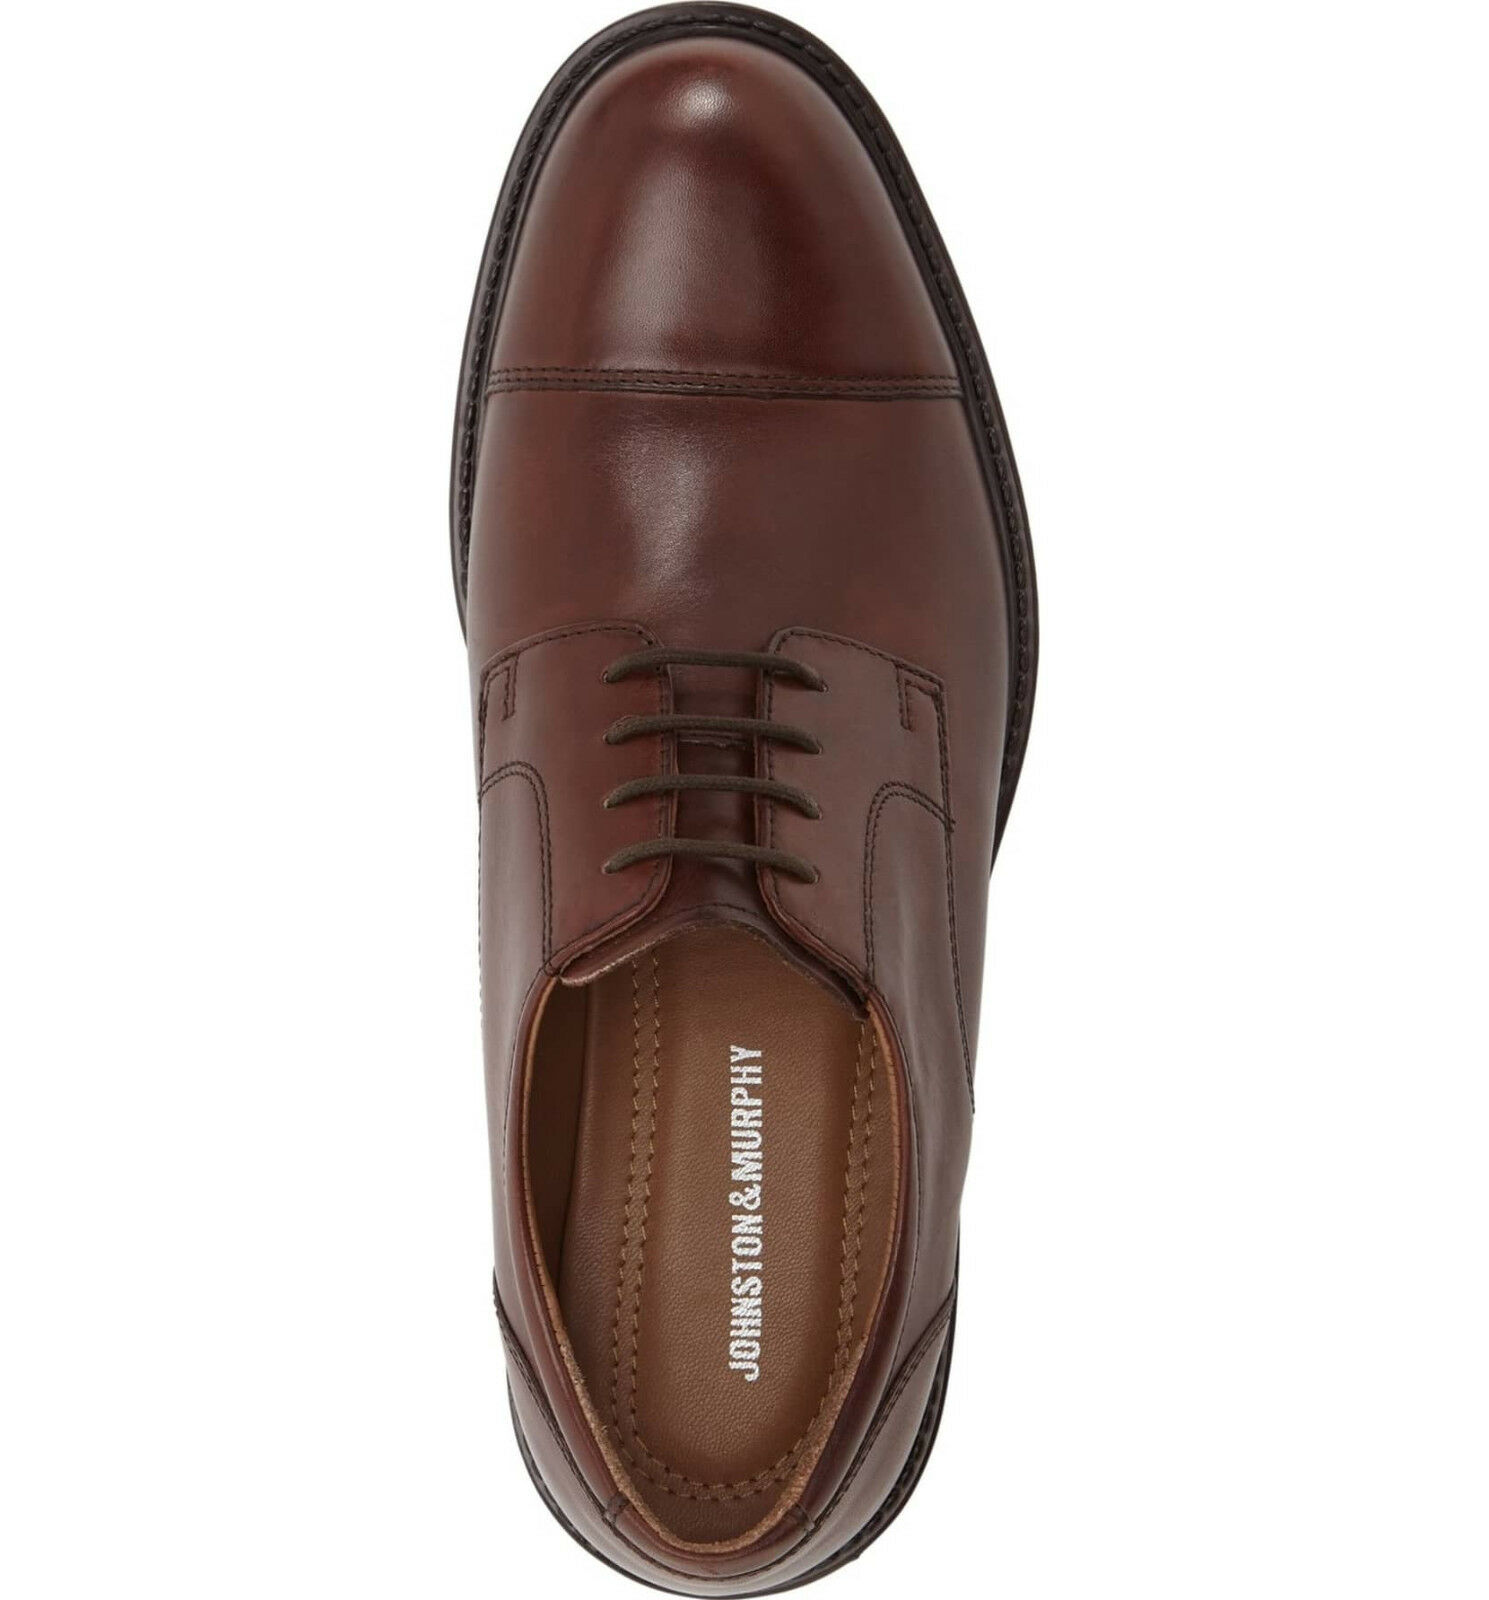 JOHNSTON & MURPHY Tabor Cap Toe Derby Leather Brown, Brown, Brown, Size 12M 17b315